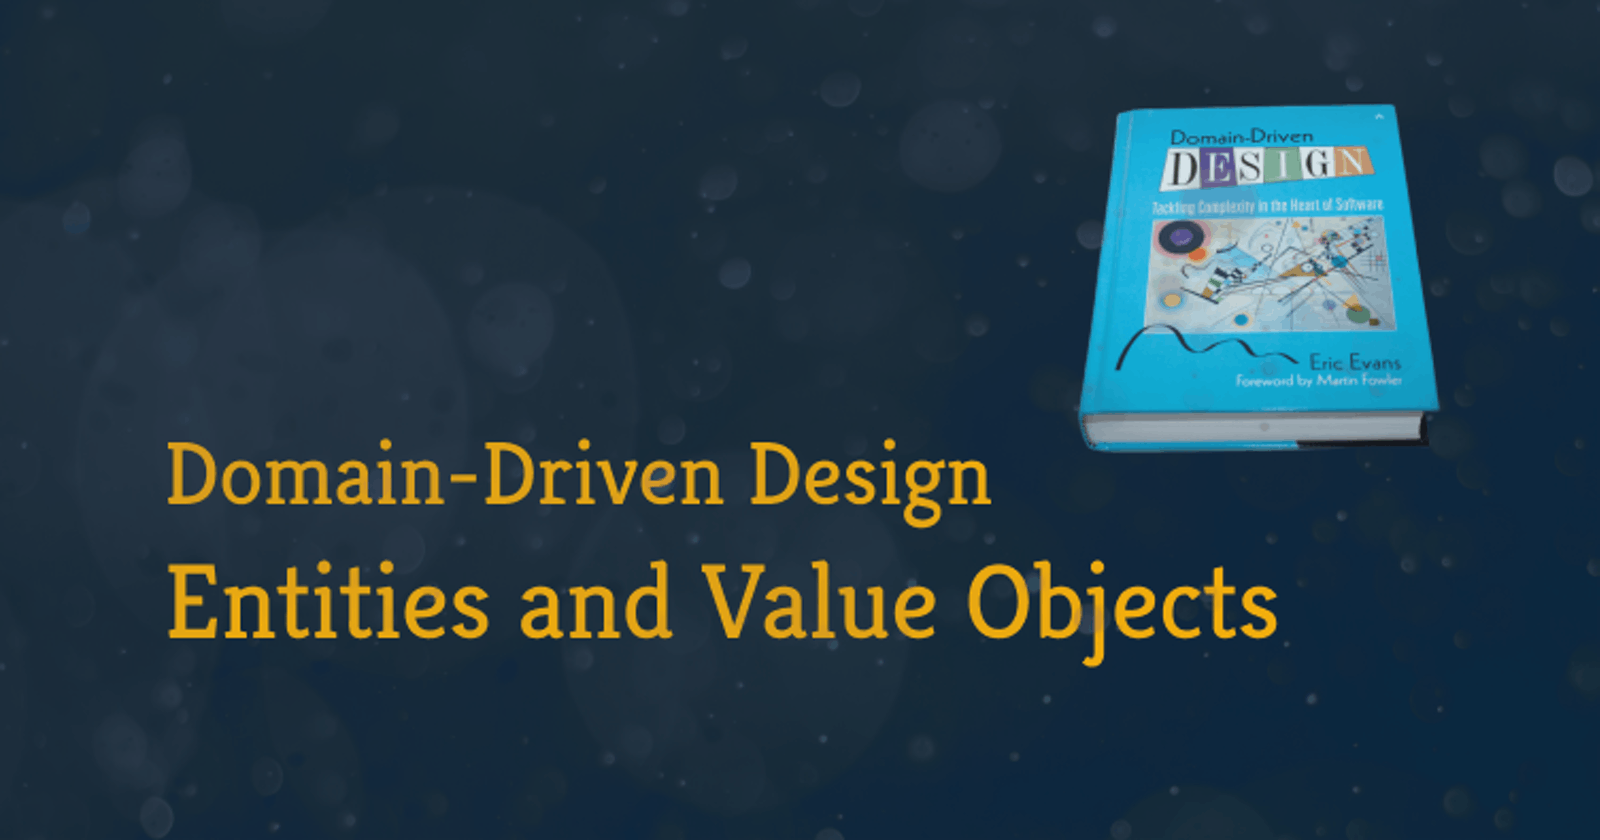 Domain-Driven Design: Entities, Value Objects, and How To Distinguish Them